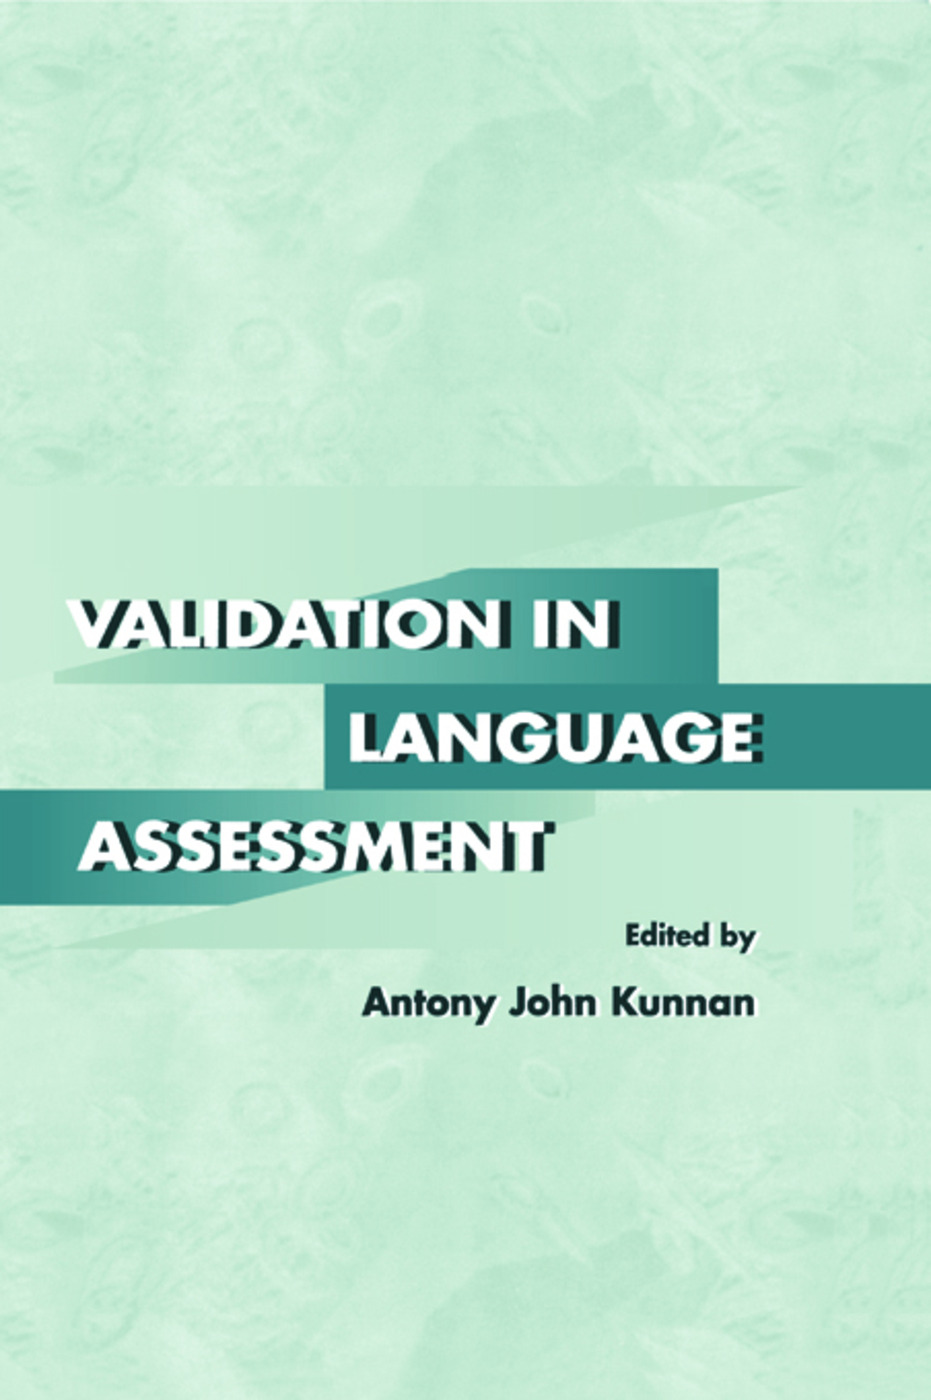 Validation in Language Assessment (Paperback) book cover